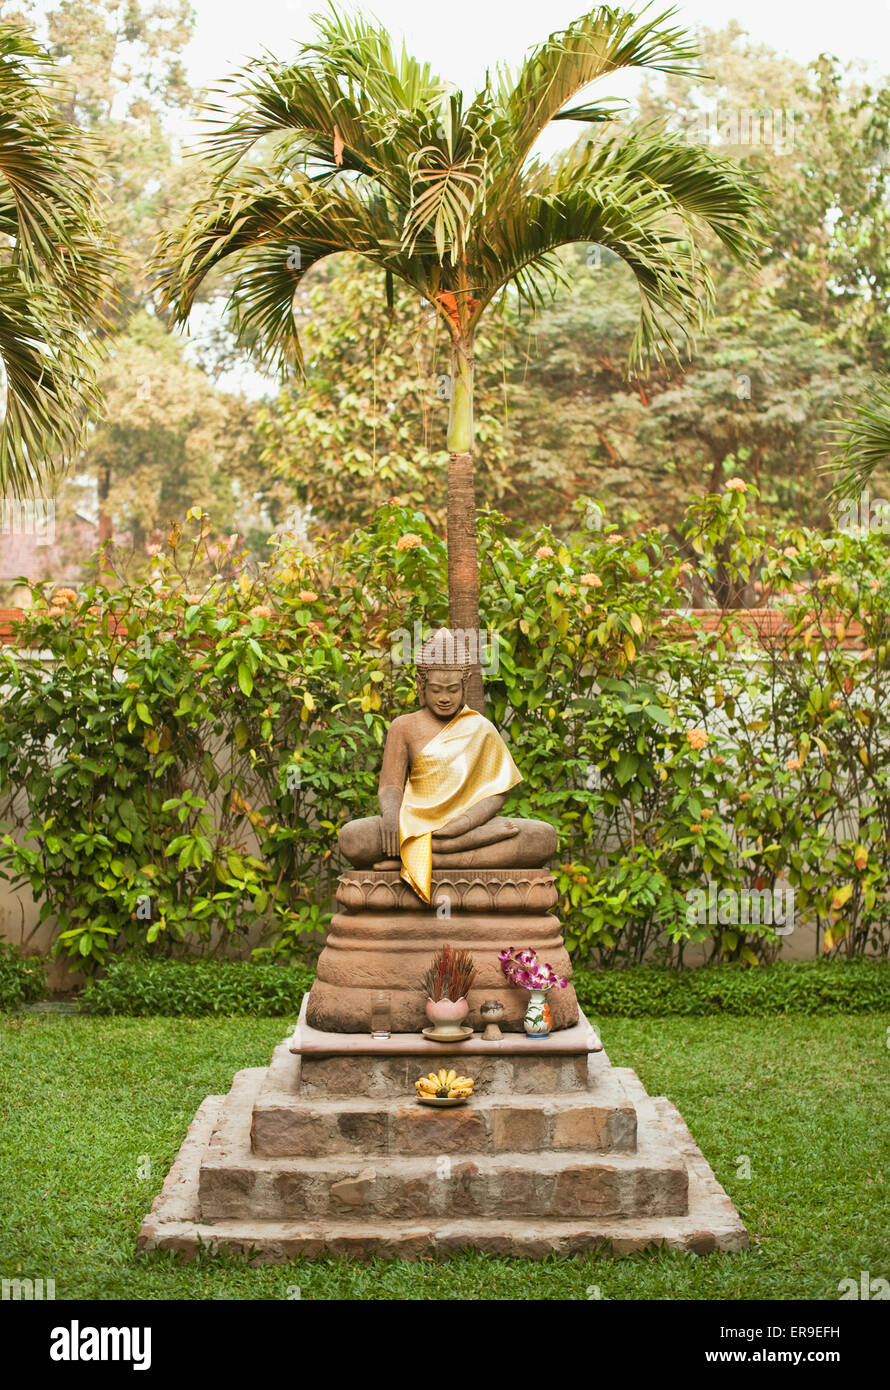 Buddha statues in the resort garden of La Residence d'Angkor, Siem Reap, Cambodia. - Stock Image